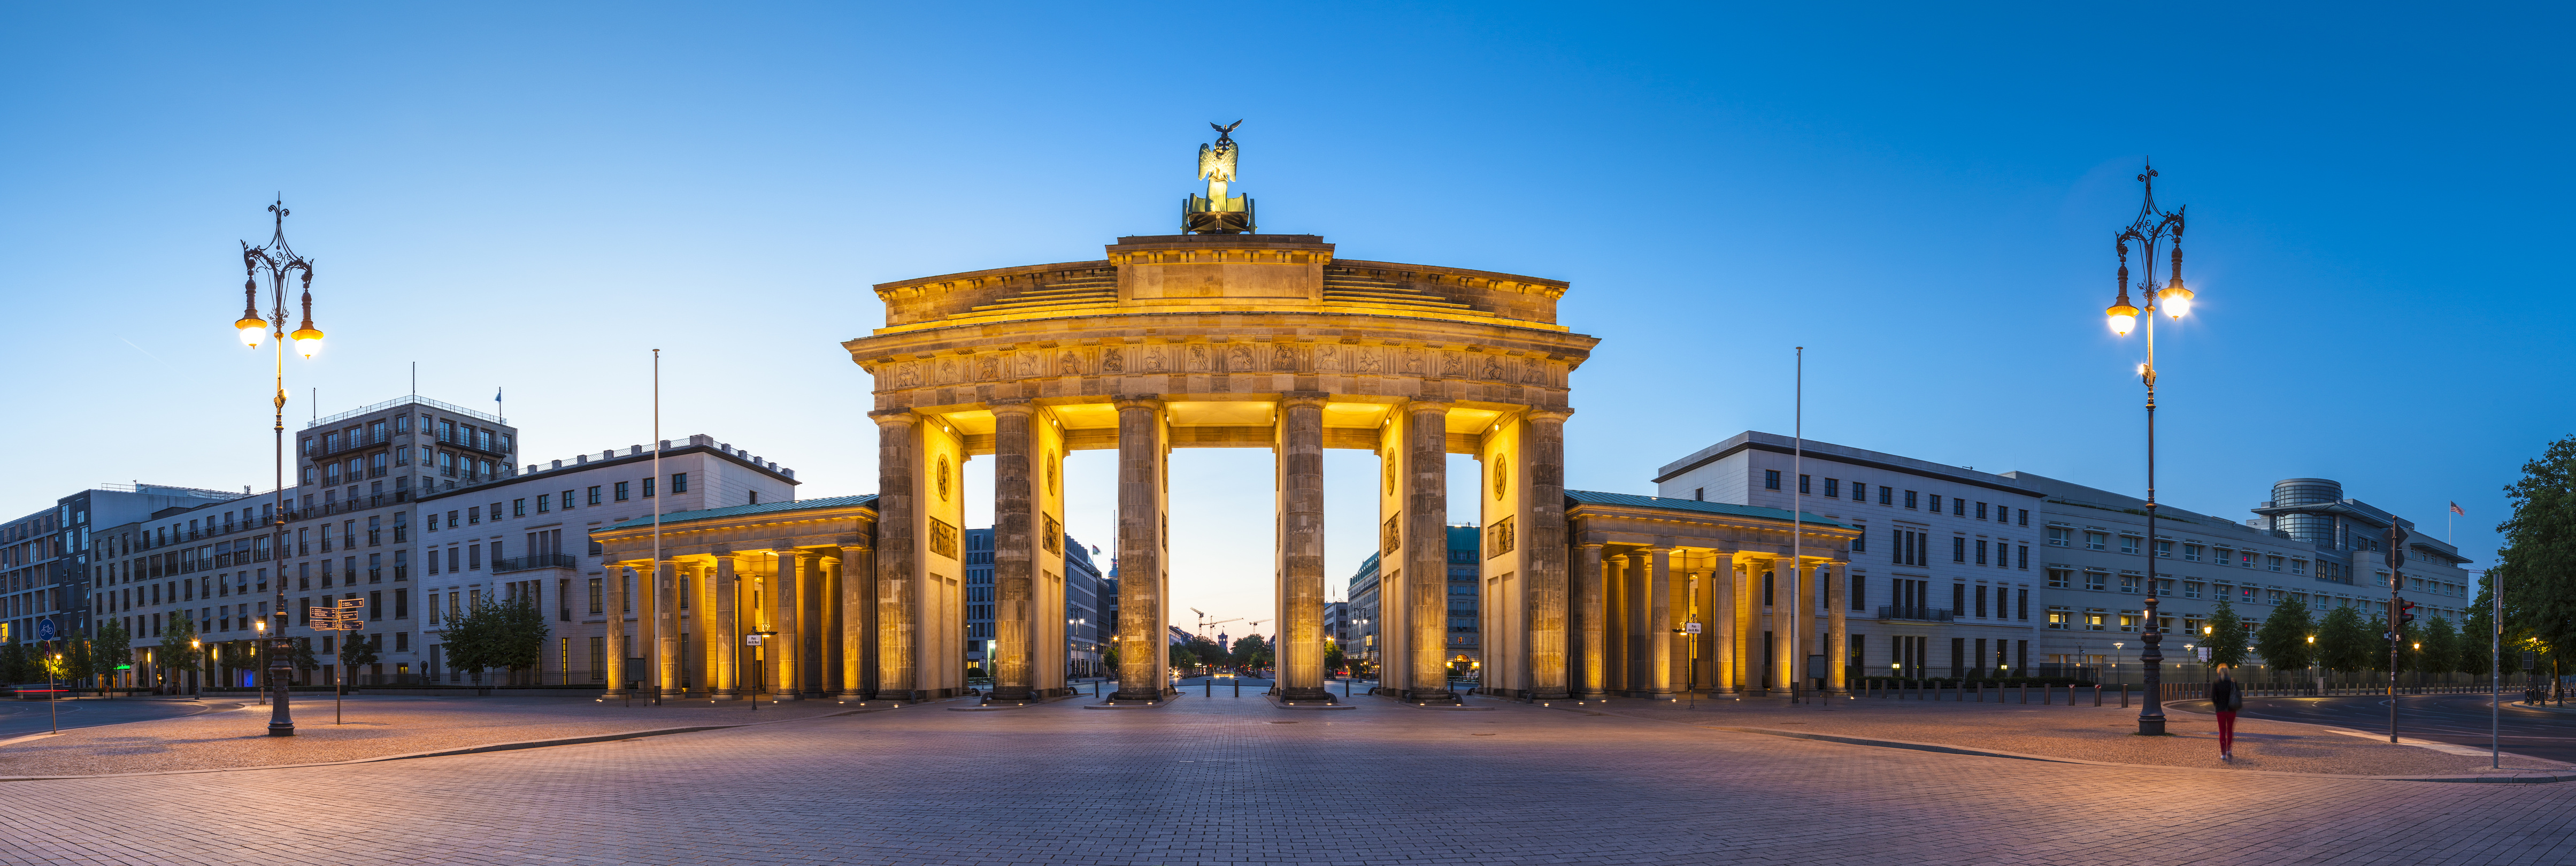 Pretty night time illuminations of the Brandenburg Gate (1788) inspired by Greek architecture, built as a symbol of peace and